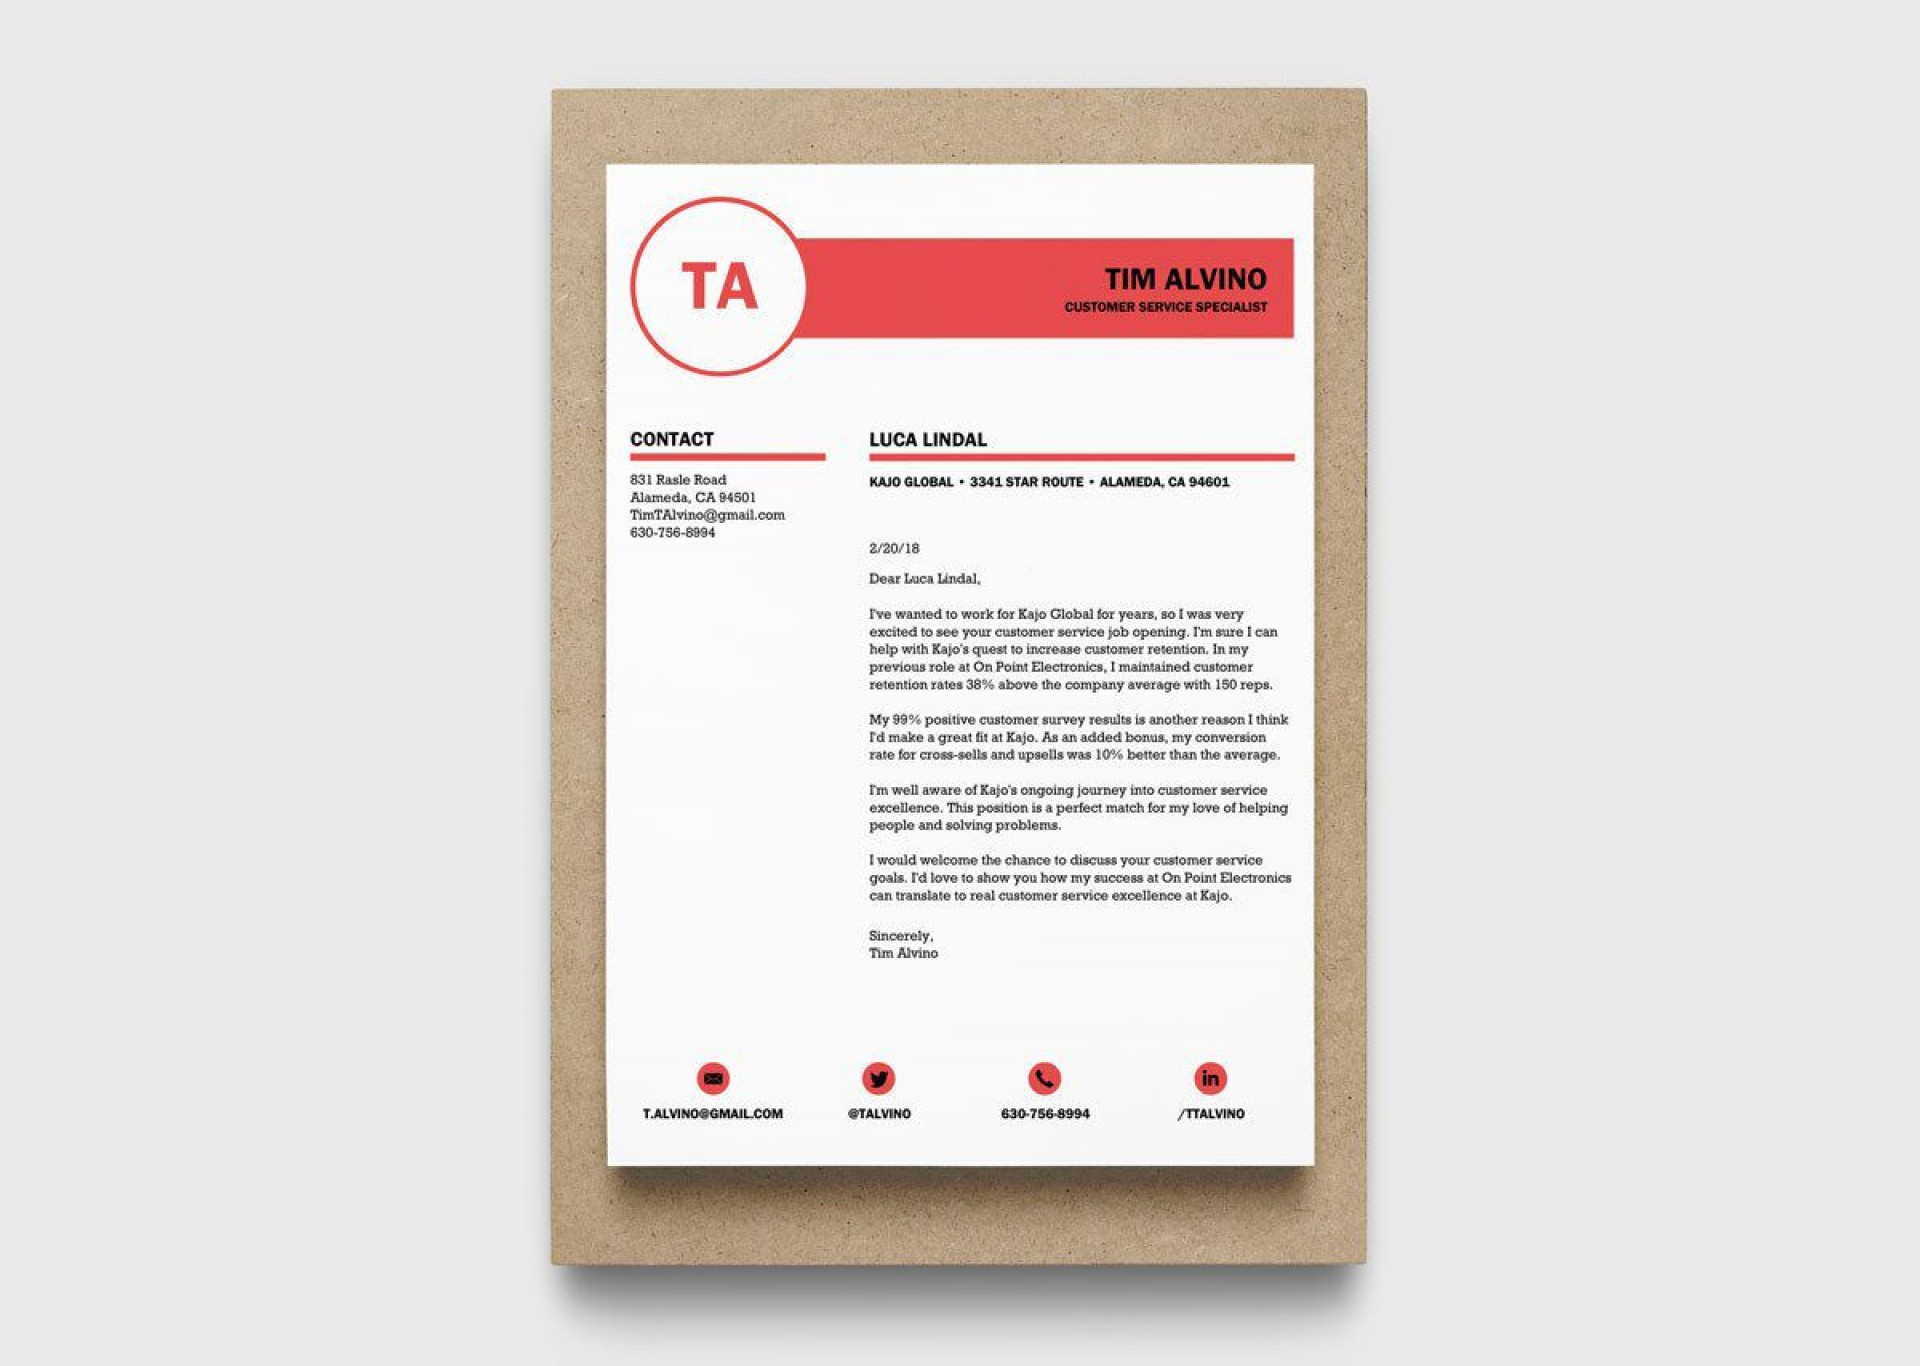 002 Rare Cover Letter Template Word Free High Definition  Creative Sample Doc Microsoft 20071920